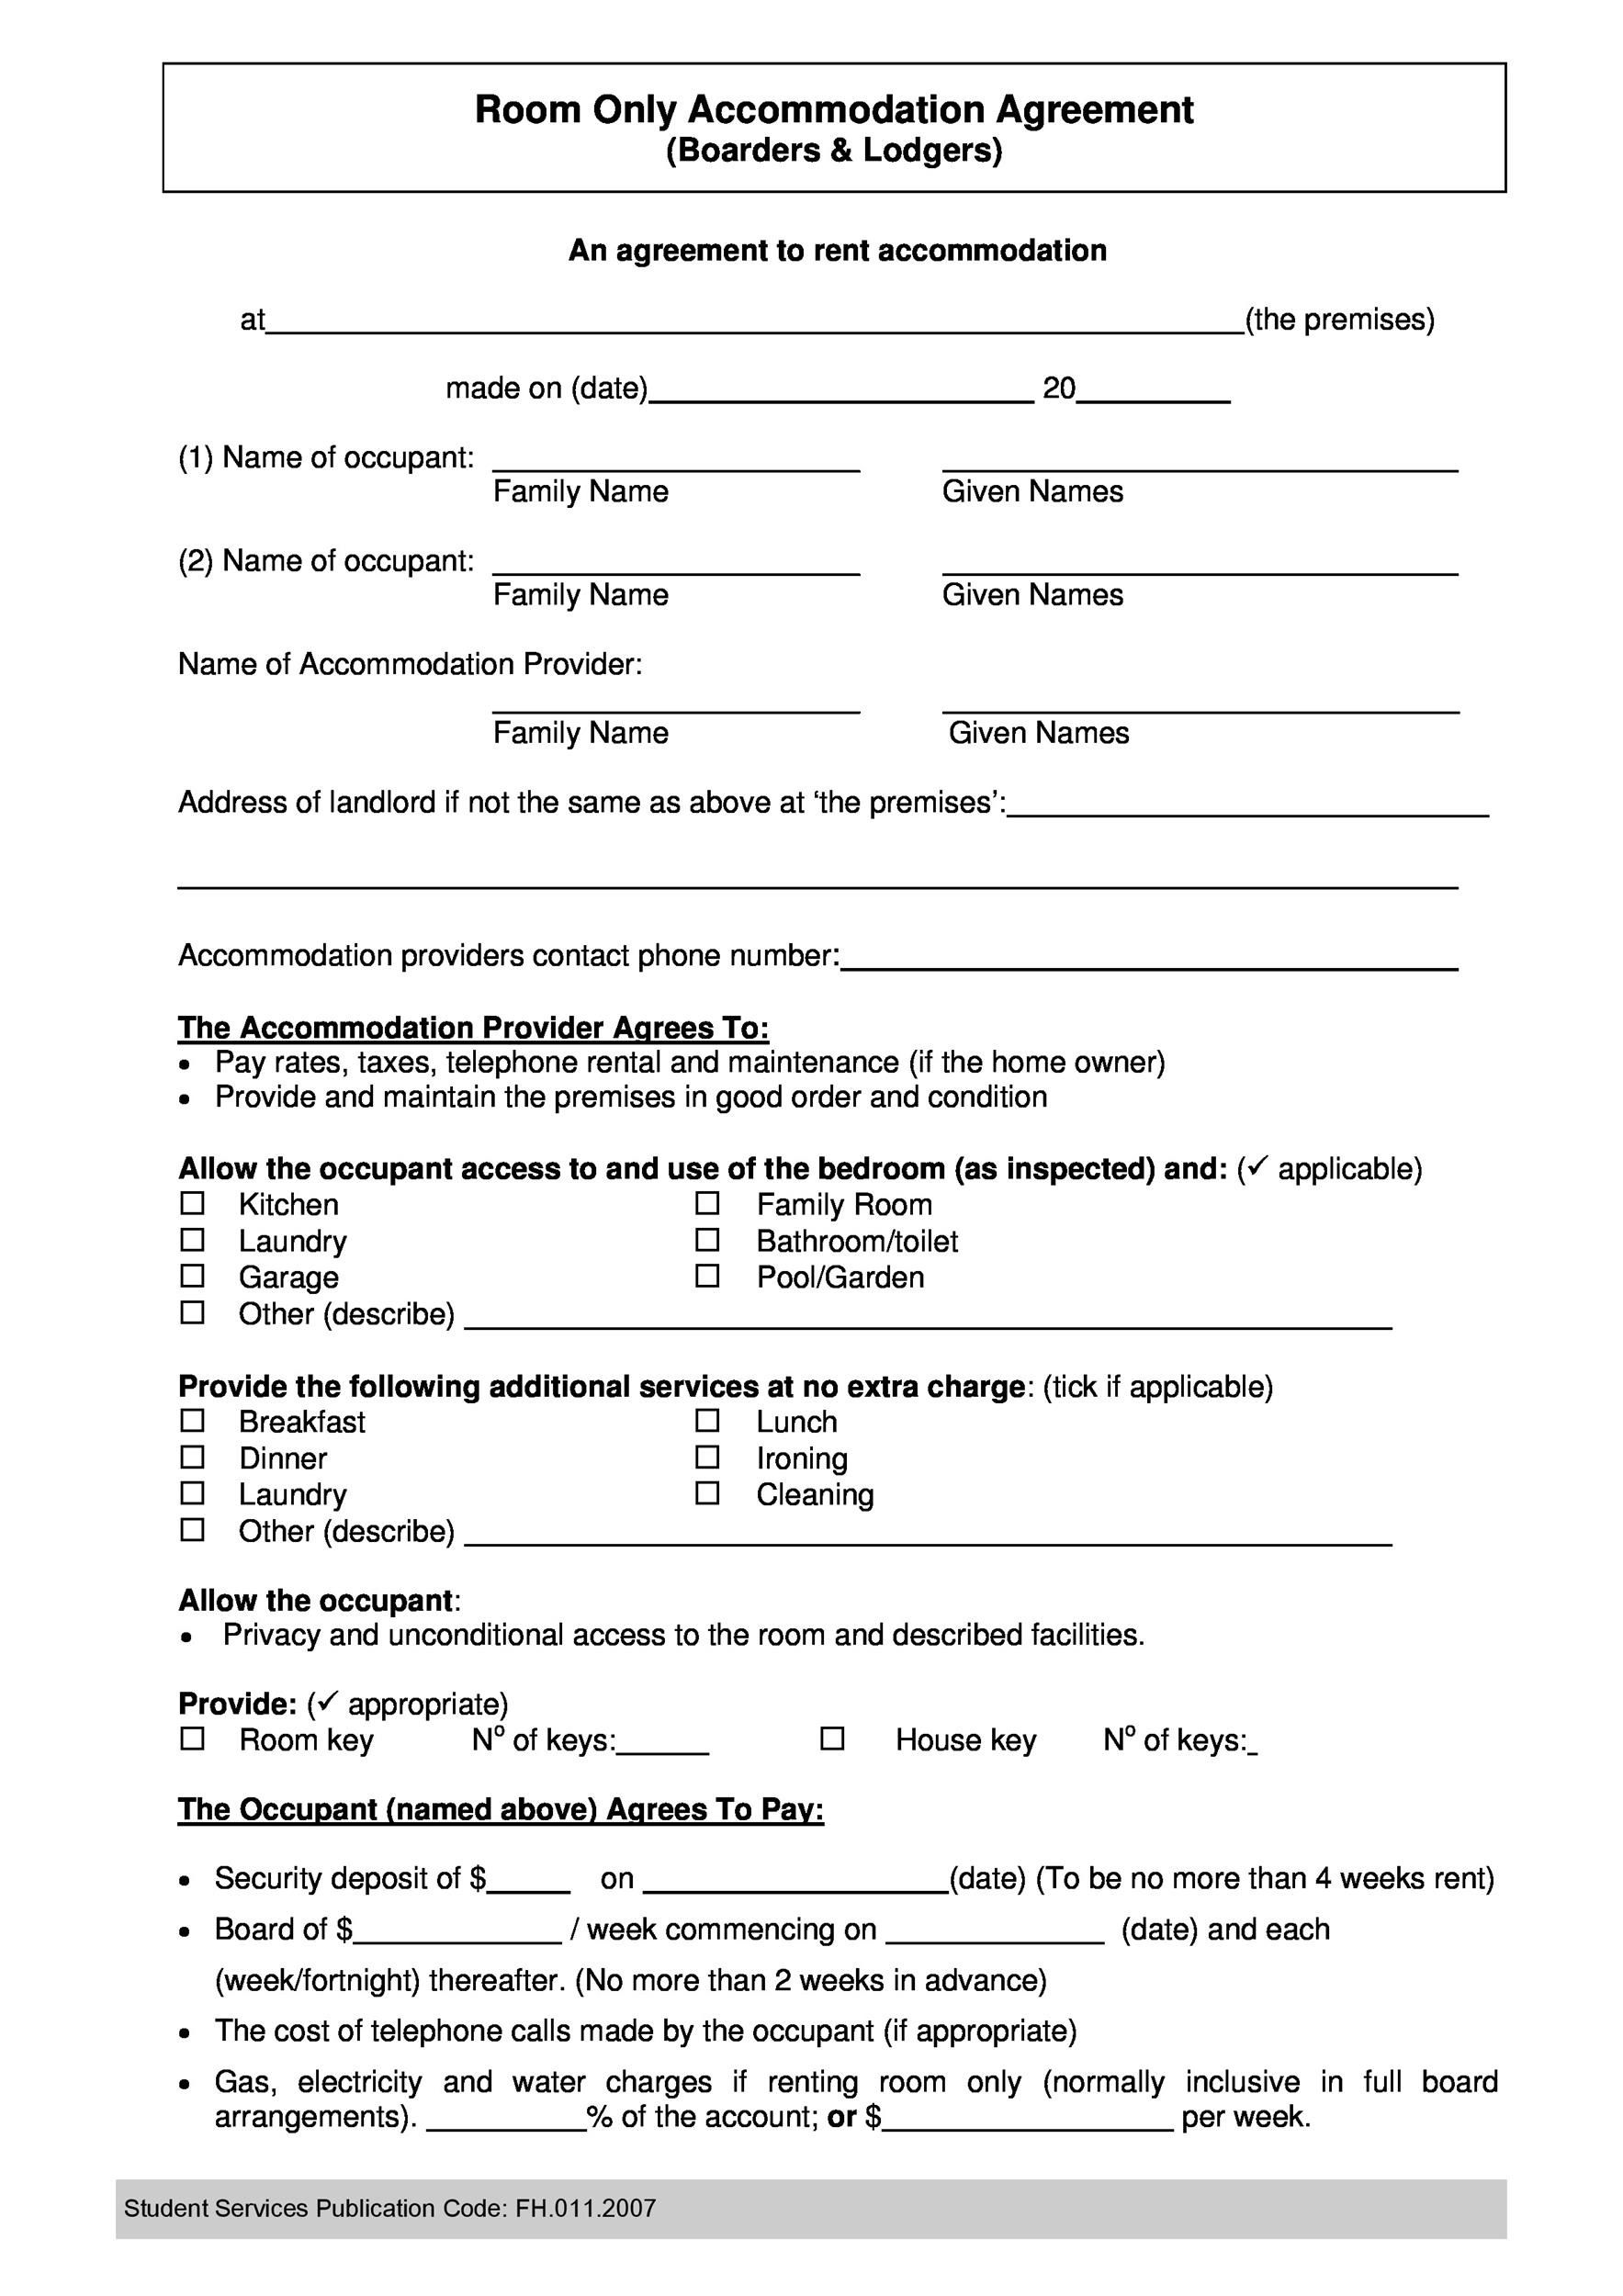 007 Fantastic Roommate Rental Agreement Template Idea  Form Free ContractFull